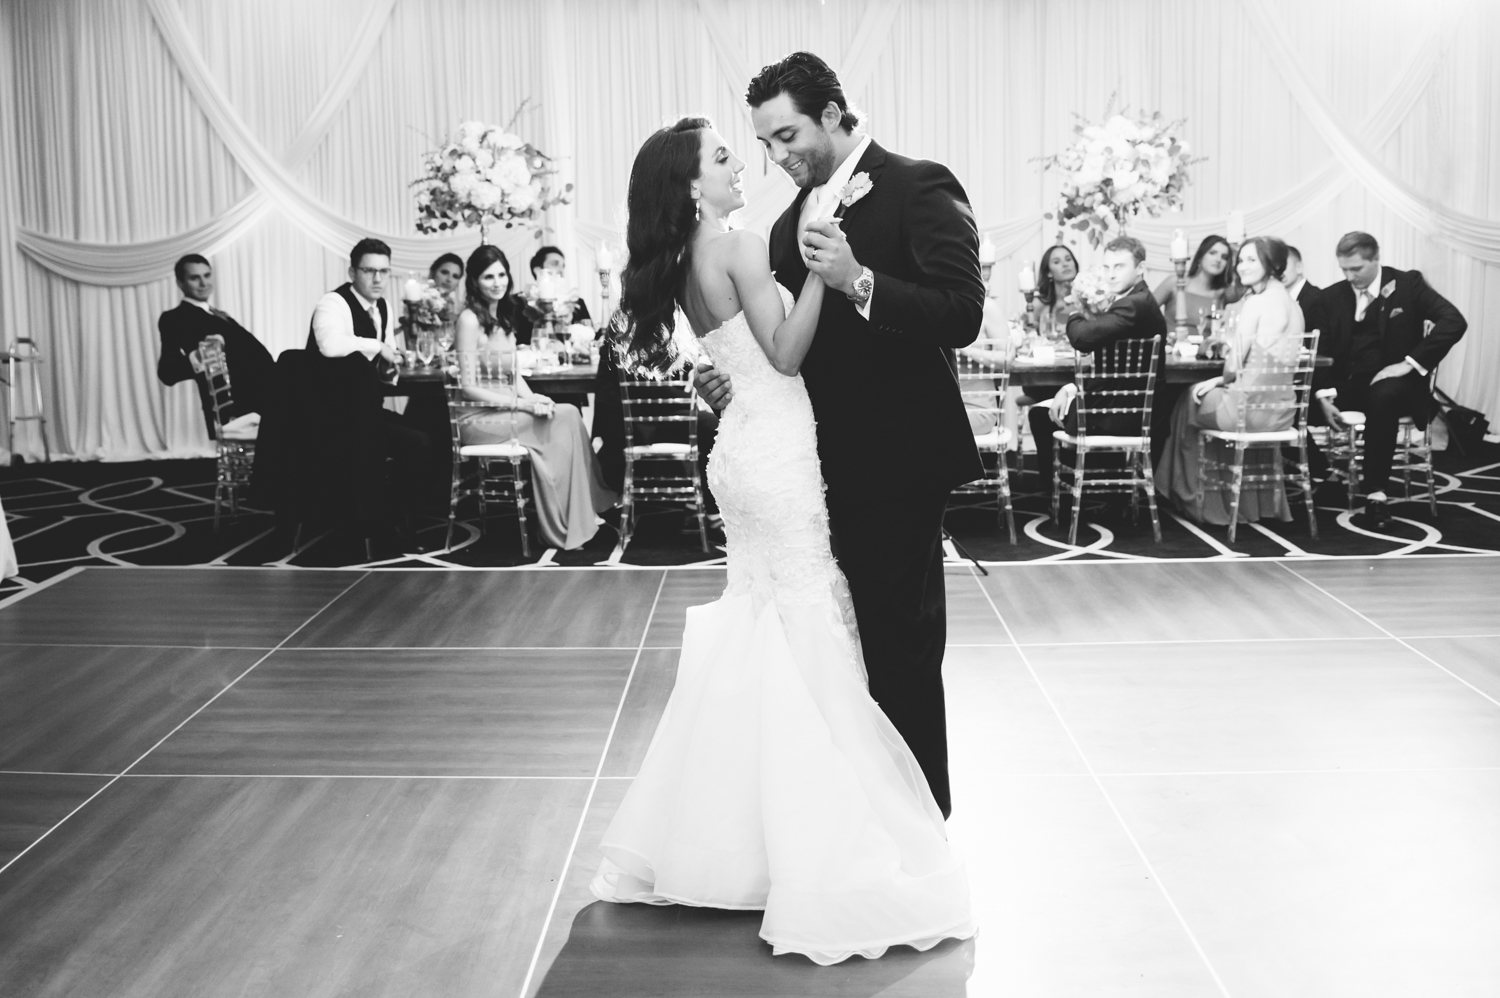 Bride and groom first dance at Gwen Hotel Chicago, Chicago wedding photographer